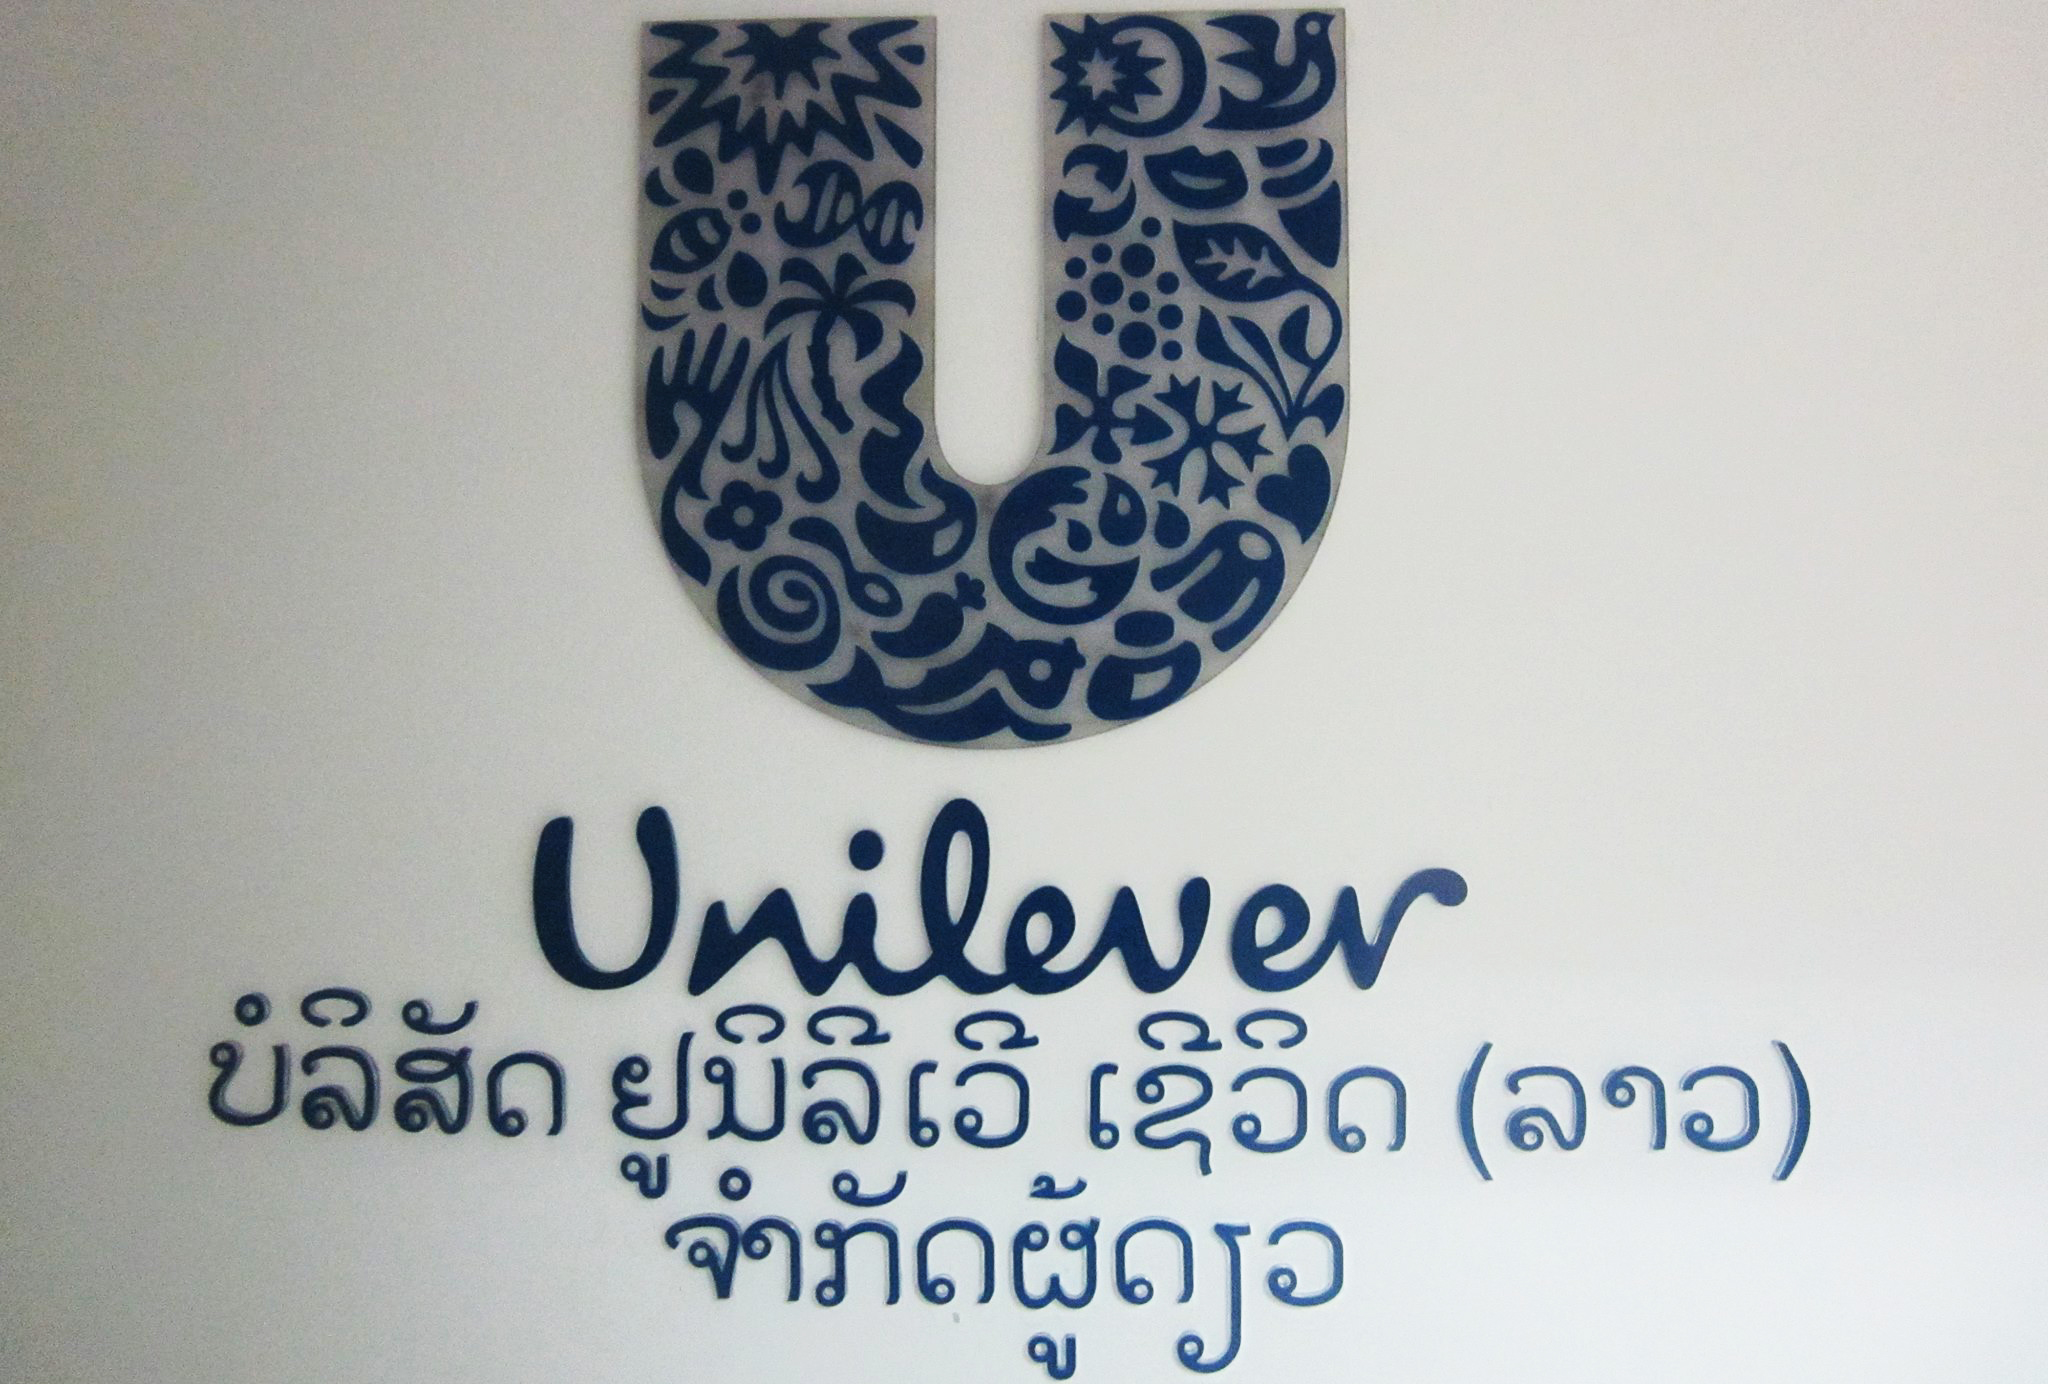 ຢູລິນີເວີ Unilever Services Laos(Sole) Co.,ltd